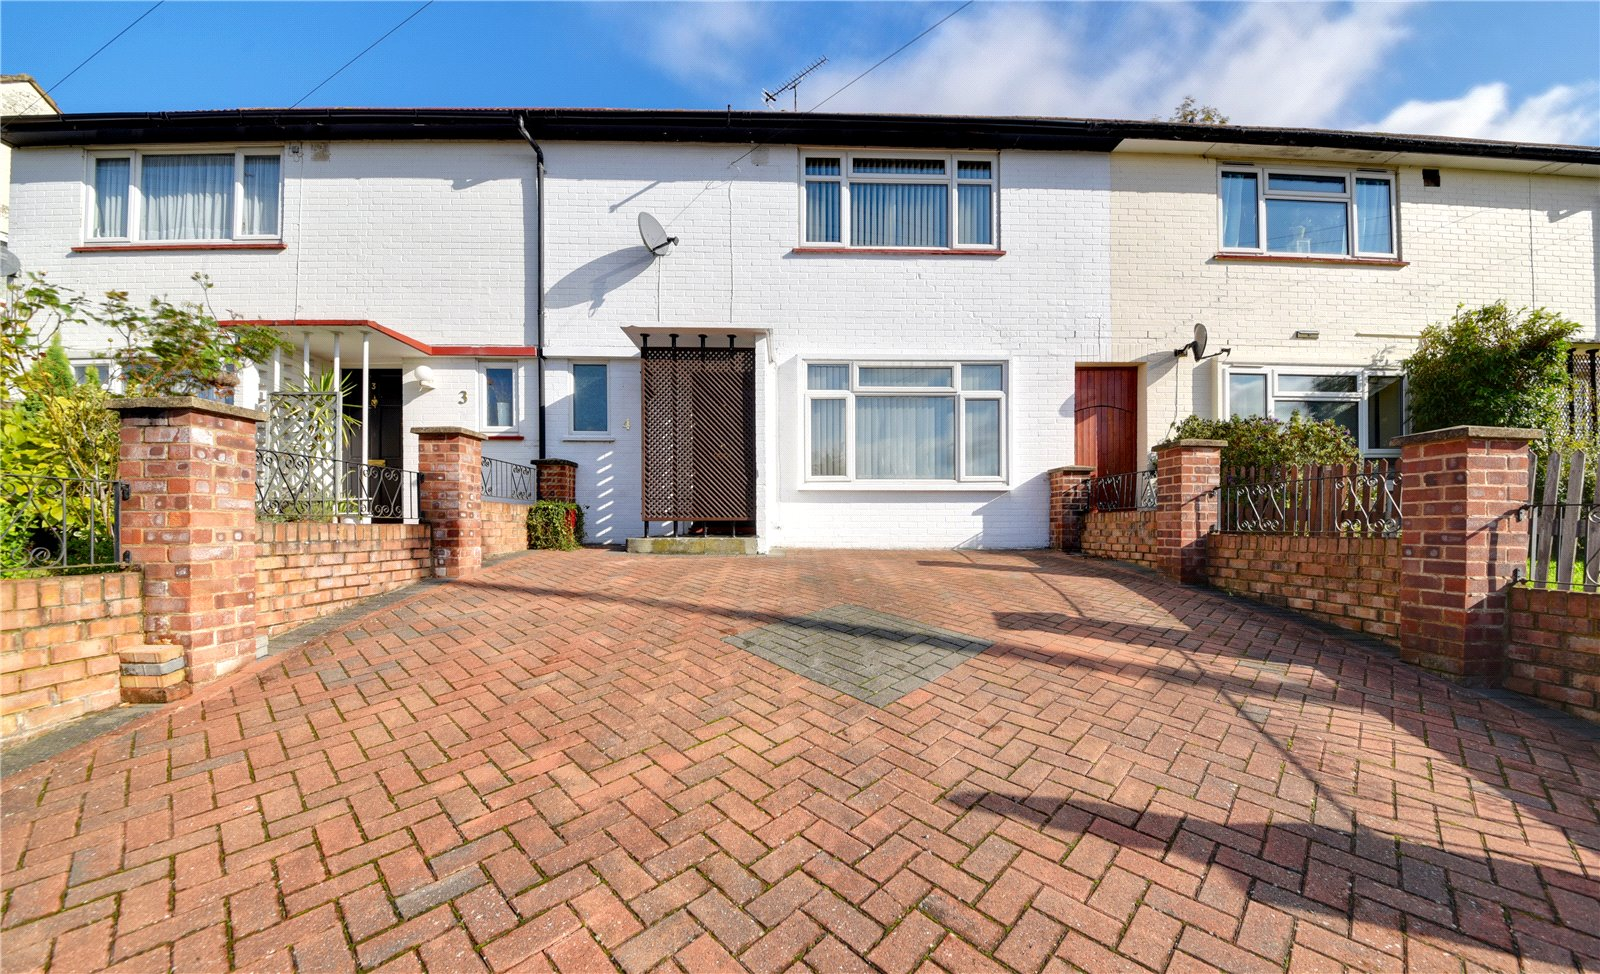 2 bed house for sale in Arkley, EN5 3DW, EN5